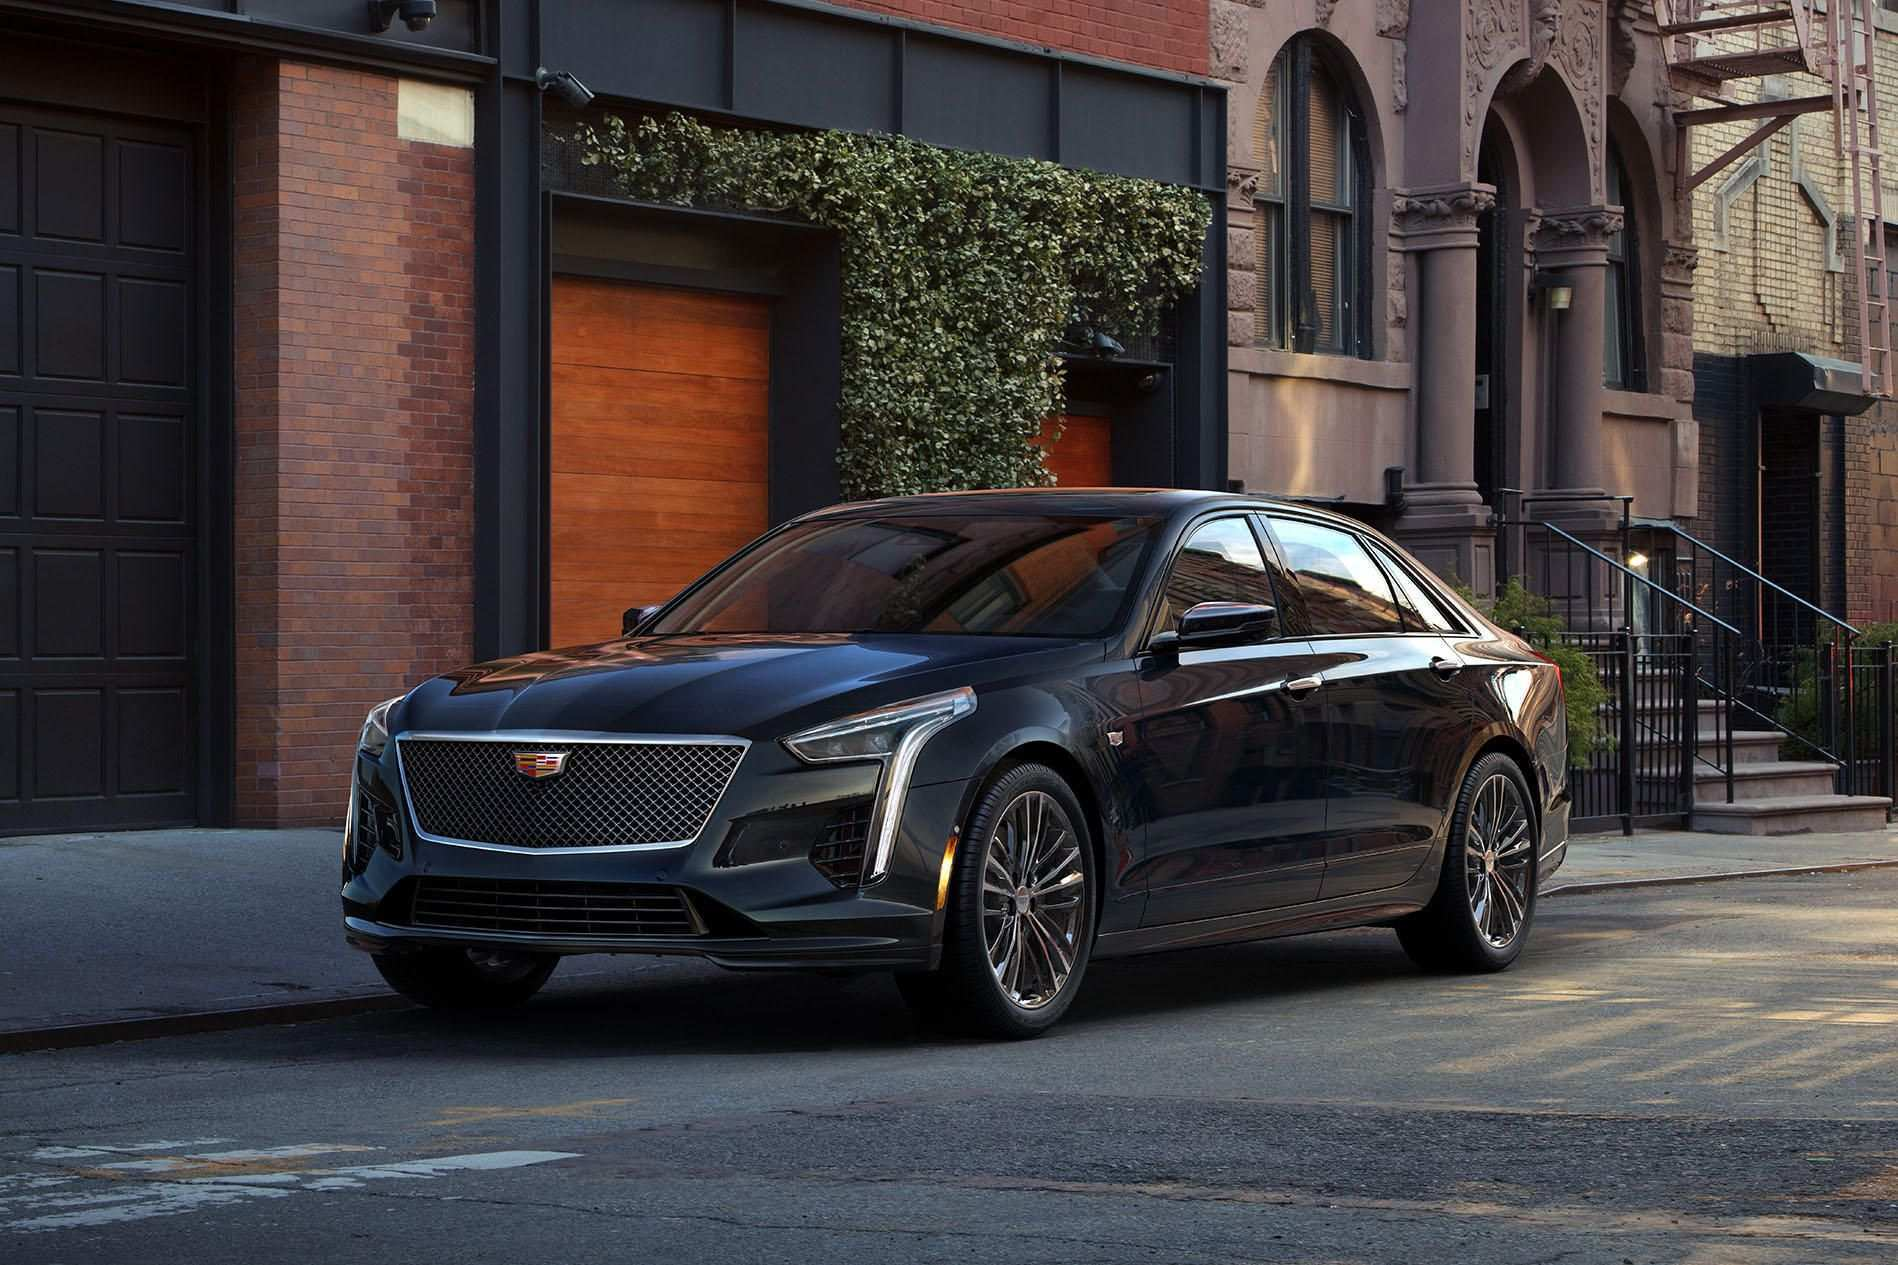 17 New 2019 Cadillac Twin Turbo V8 Exterior